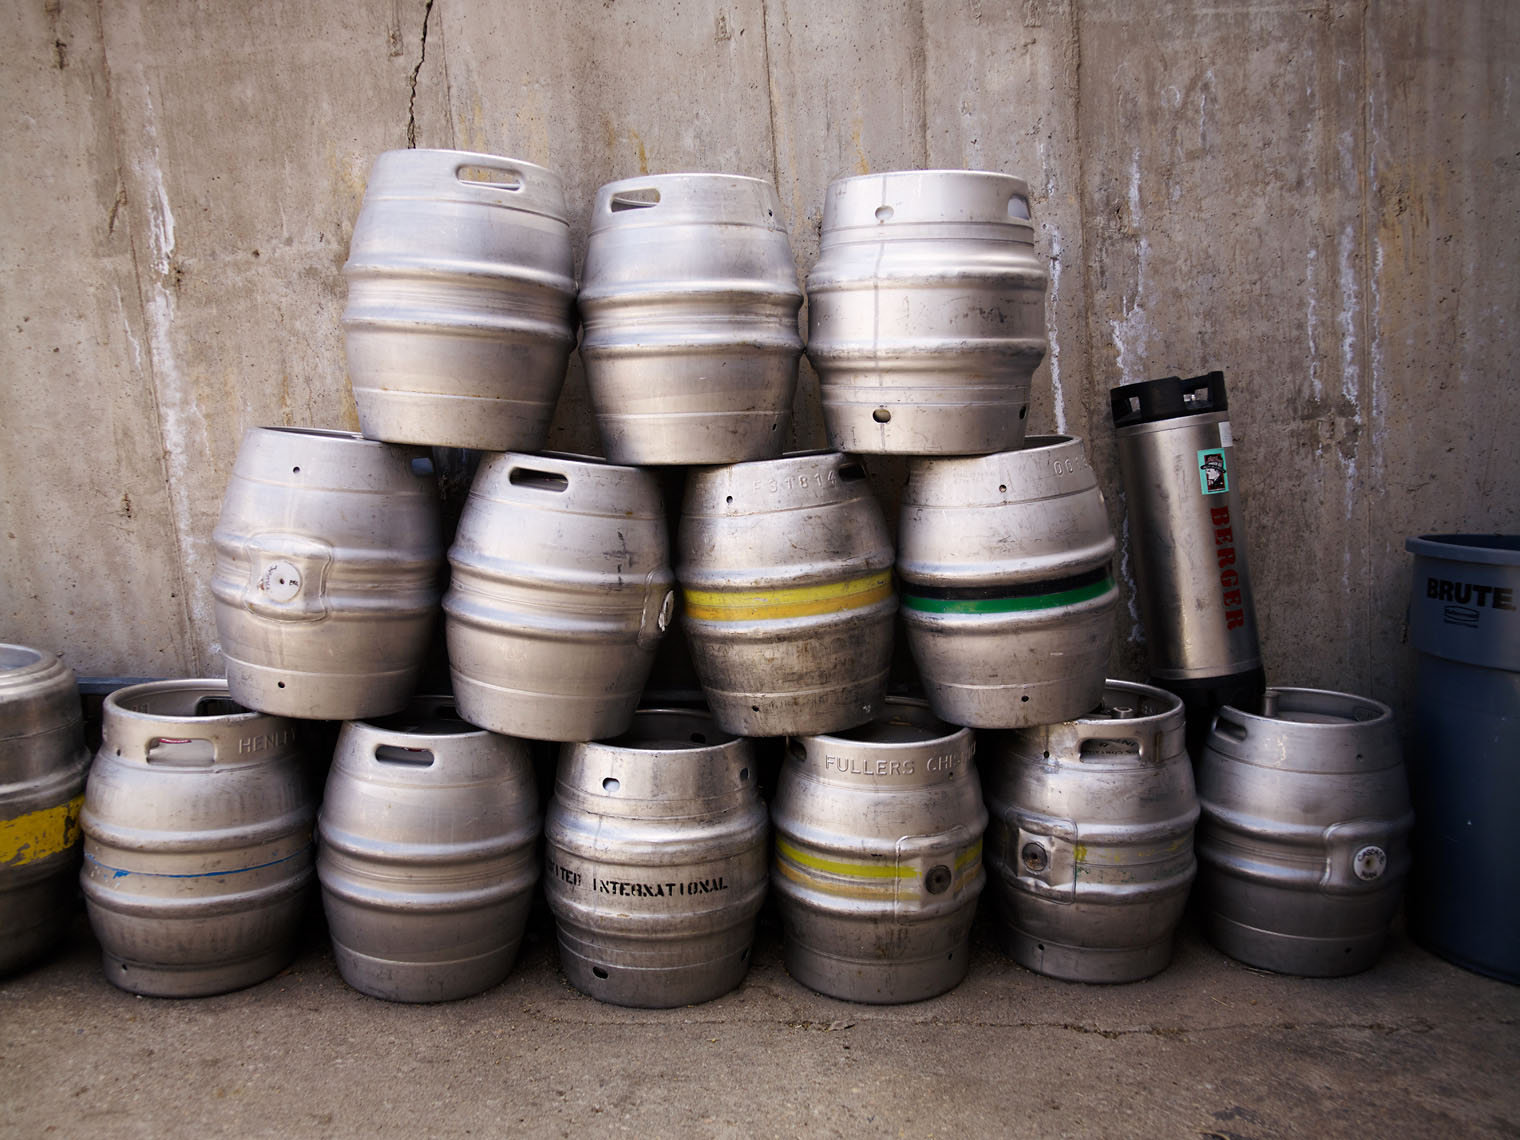 Kegs of beer outside brewery industrial